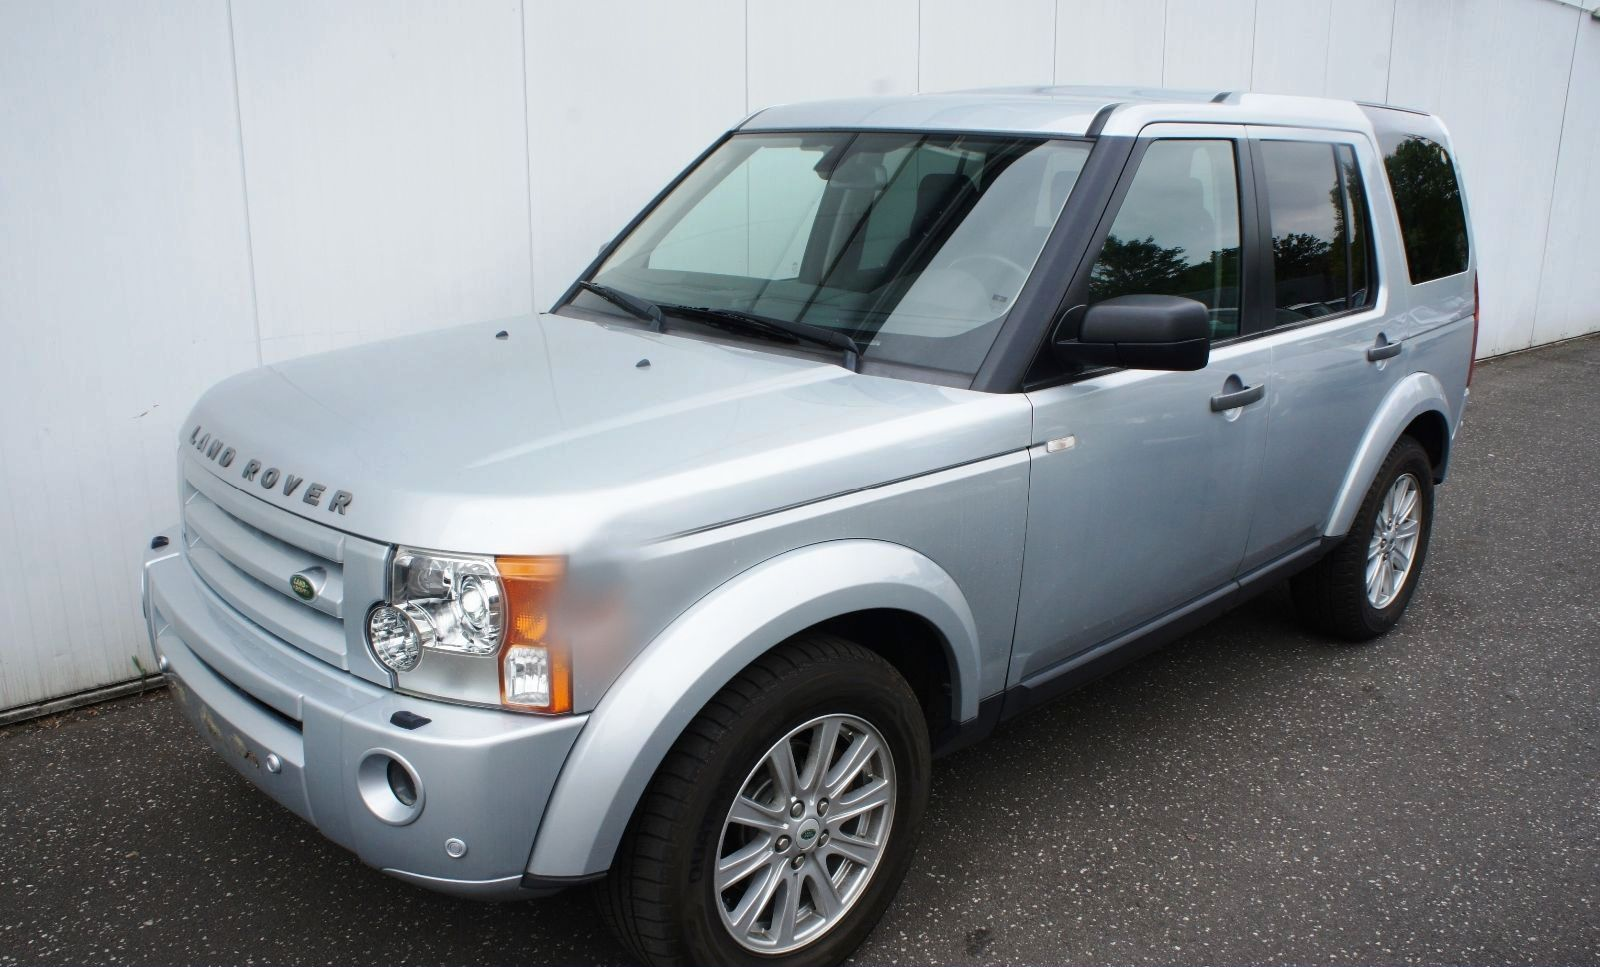 LANDROVER DISCOVERY TDV6 HSE 7 SEATS